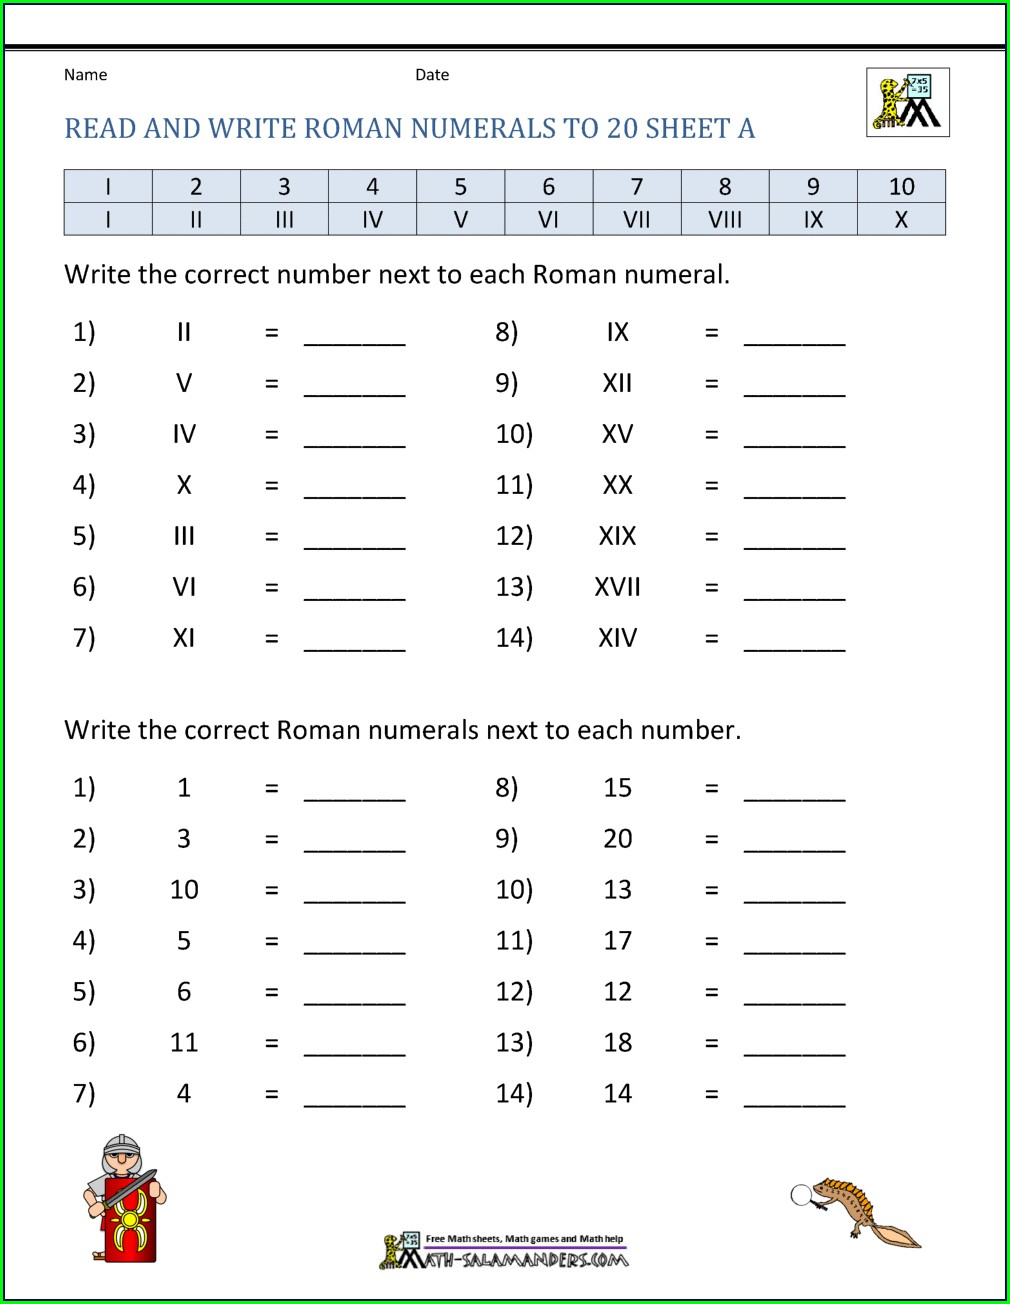 Roman Numerals Worksheet For Kinder